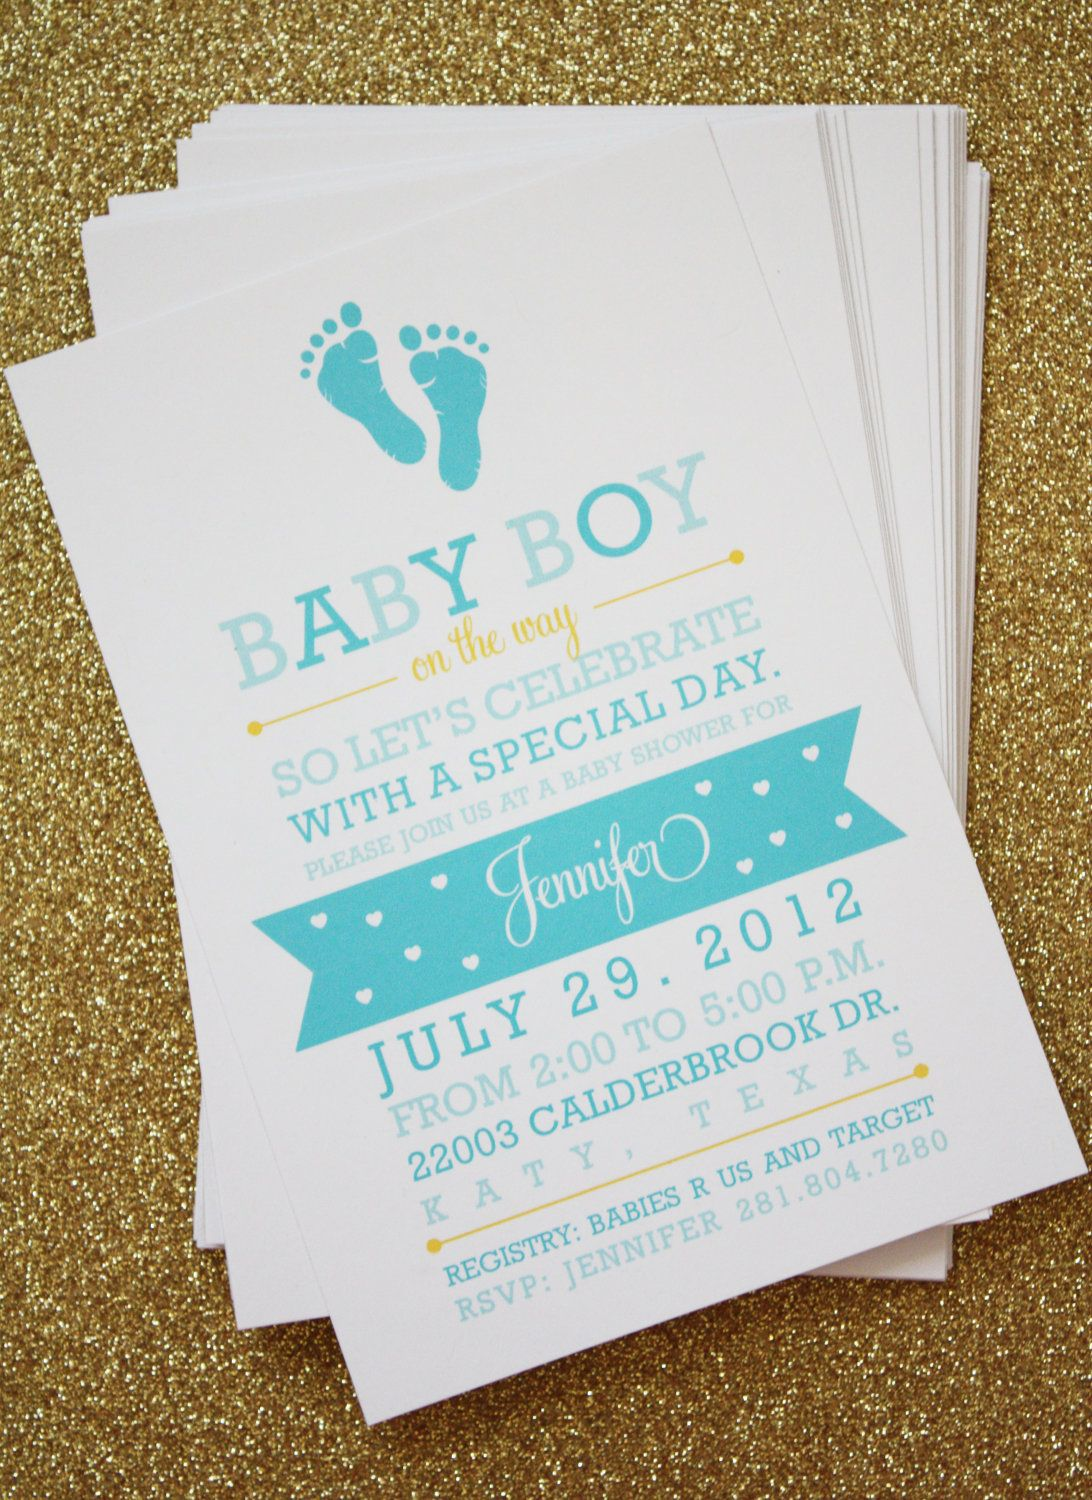 Inspiration for babyshower invitations you could easily make at inspiration for babyshower invitations you could easily make at home baby shower invitation solutioingenieria Choice Image